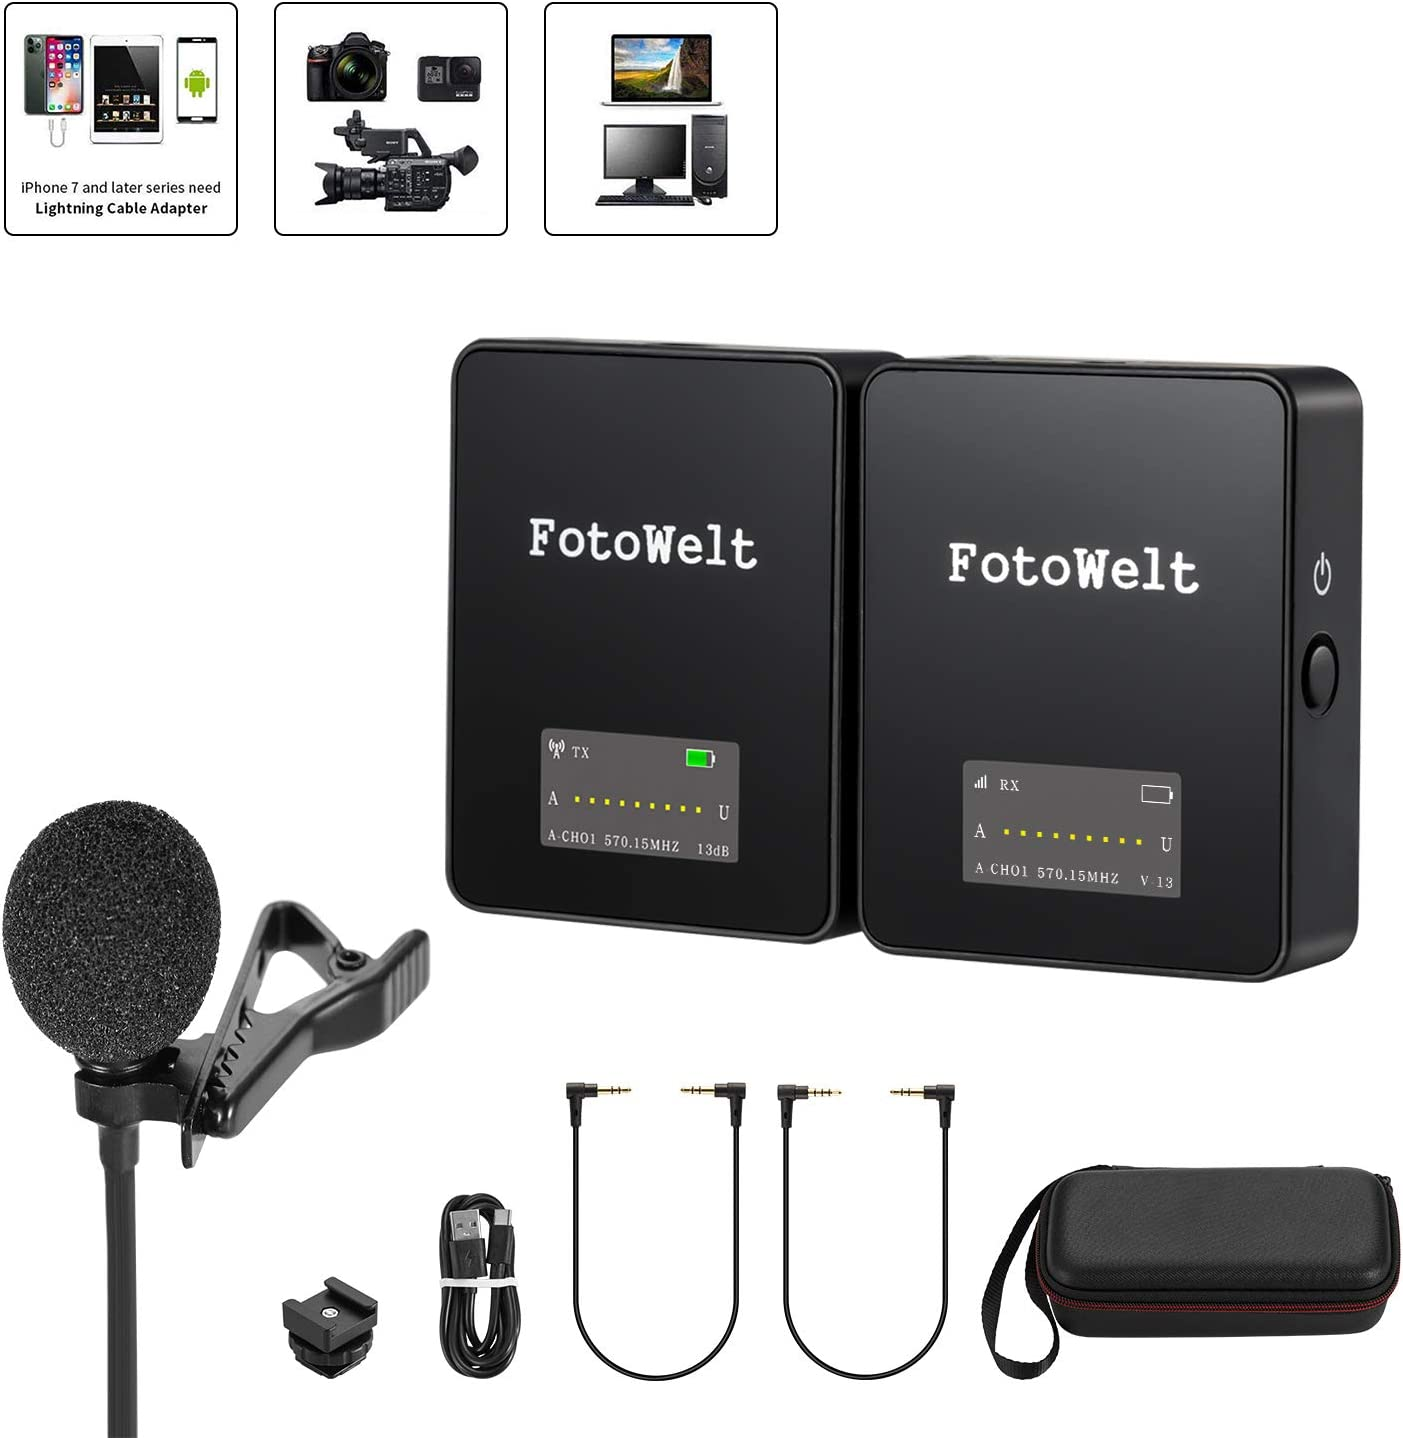 Wireless Lavalier Microphone System Mini Lapel Microphone for iPhone iPad Smartphone Camera with OLED Display, Omnidirectional External Lav Mic for Podcast Interview Vlogging YouTube Video Recording